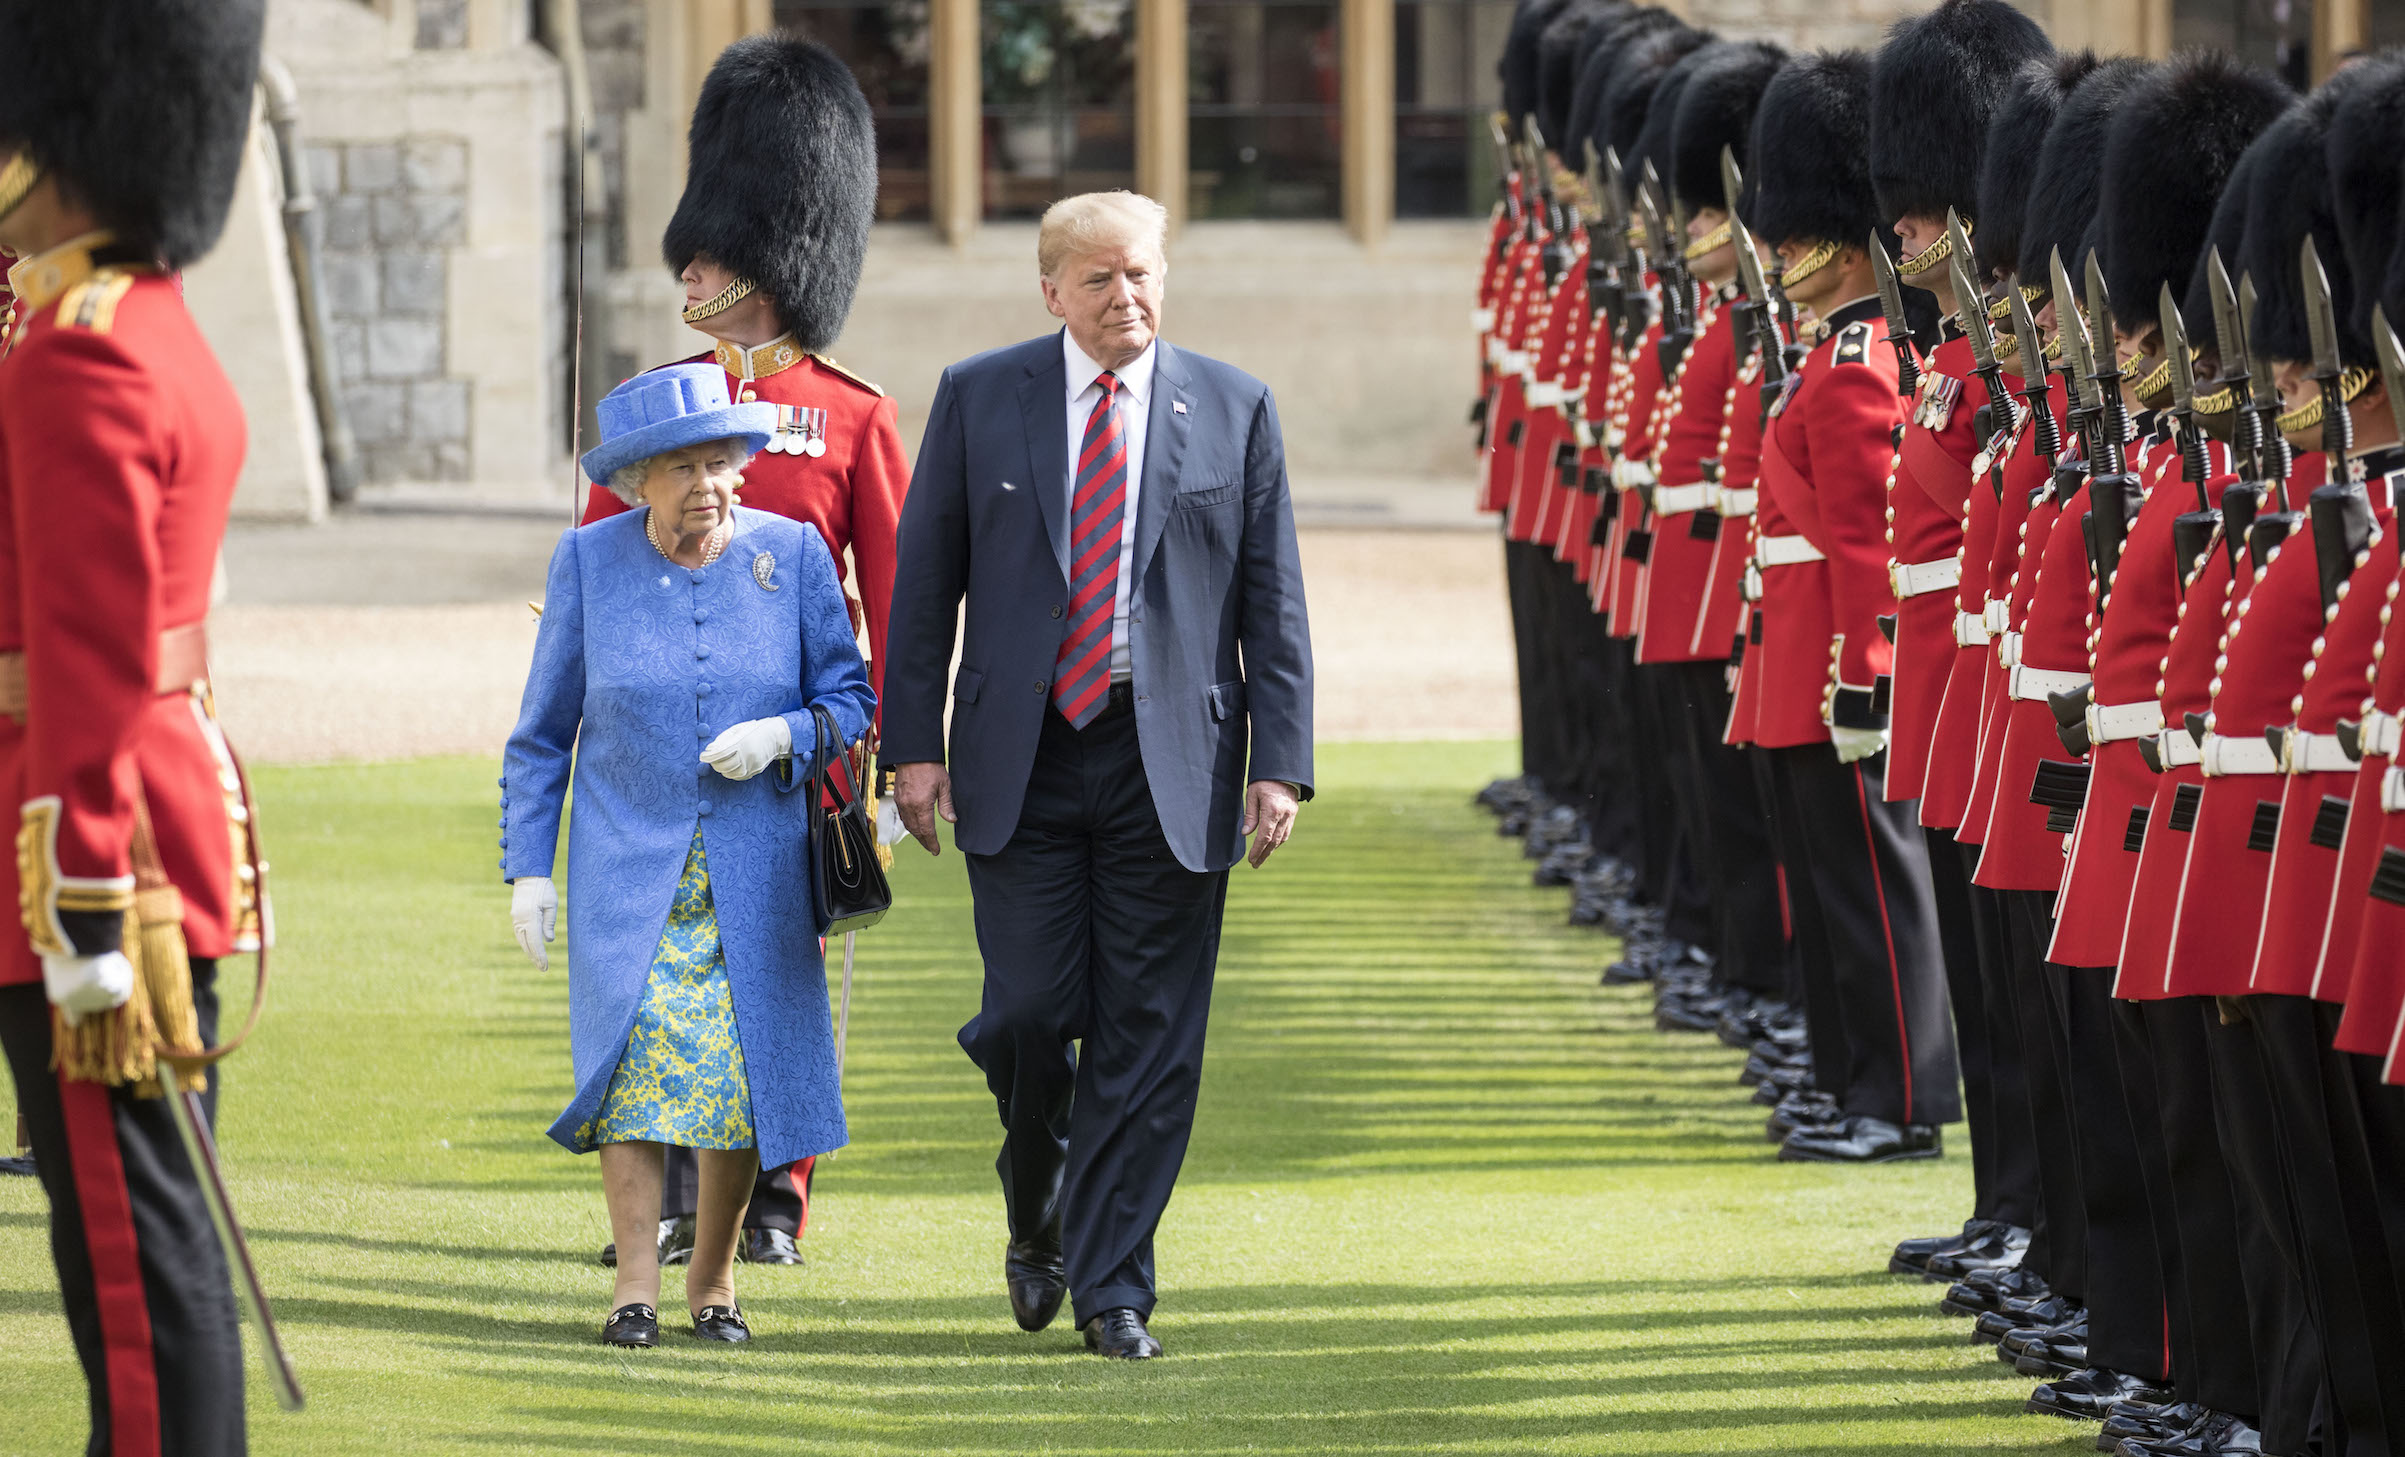 The Queen walks with President Trump as they inspect the Coldstream guards at Windsor castle on July 13, 2018.